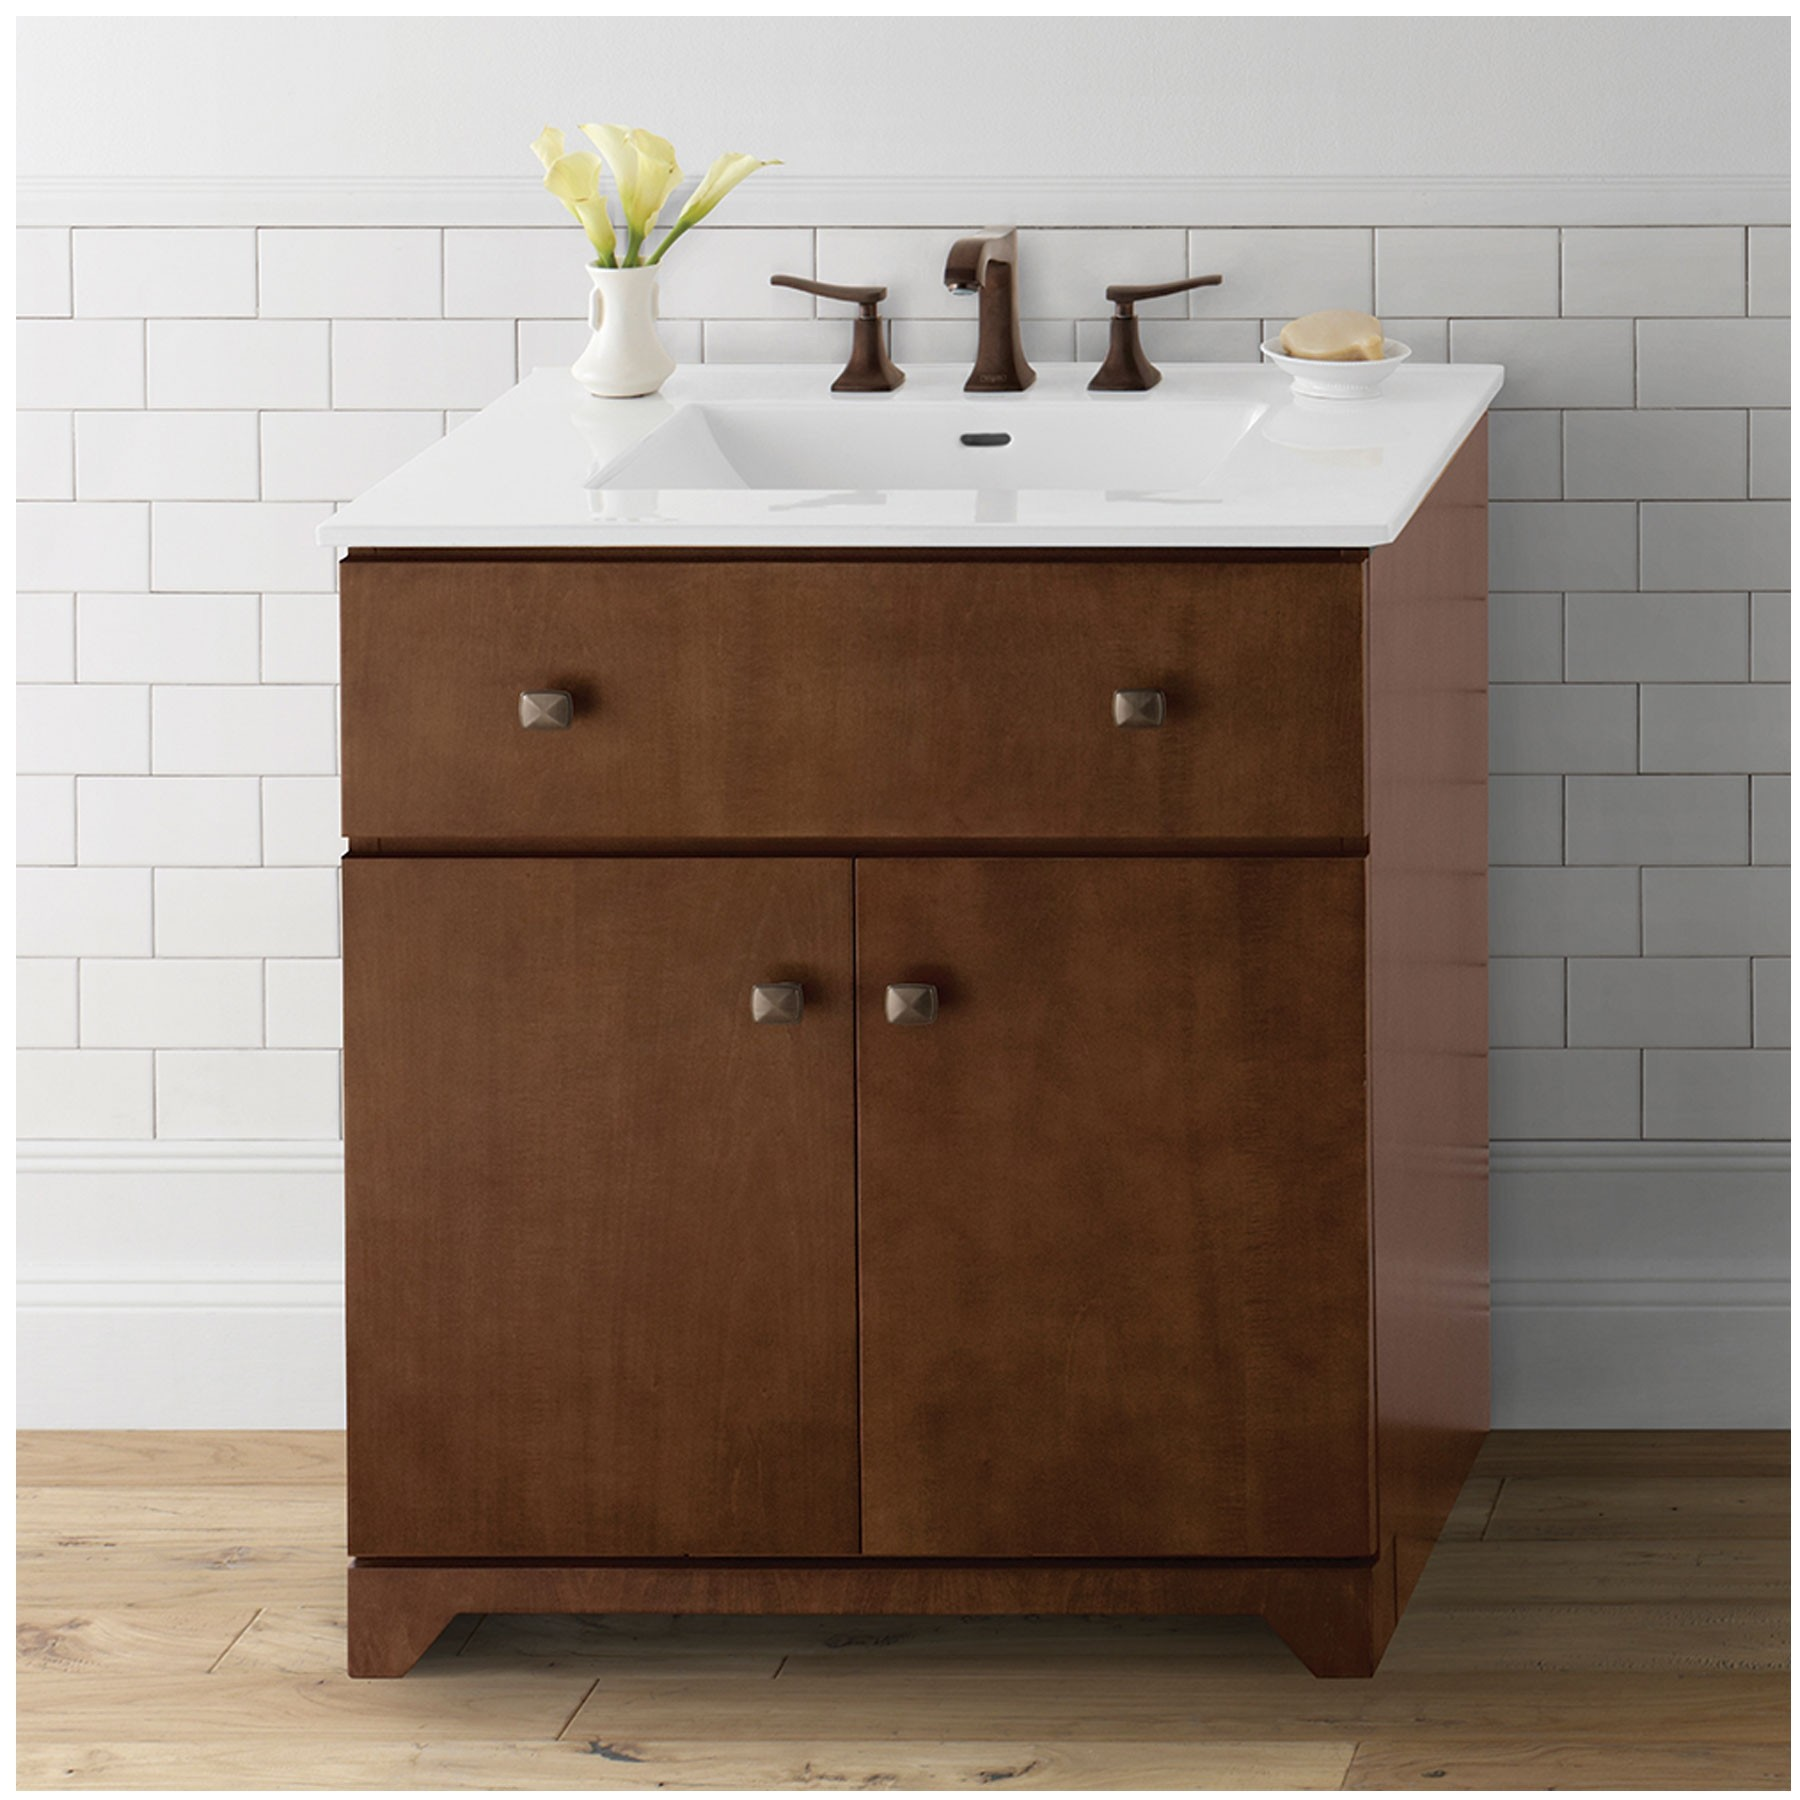 ... Bathroom Vanity Base Cabinet Only. Previous; Next